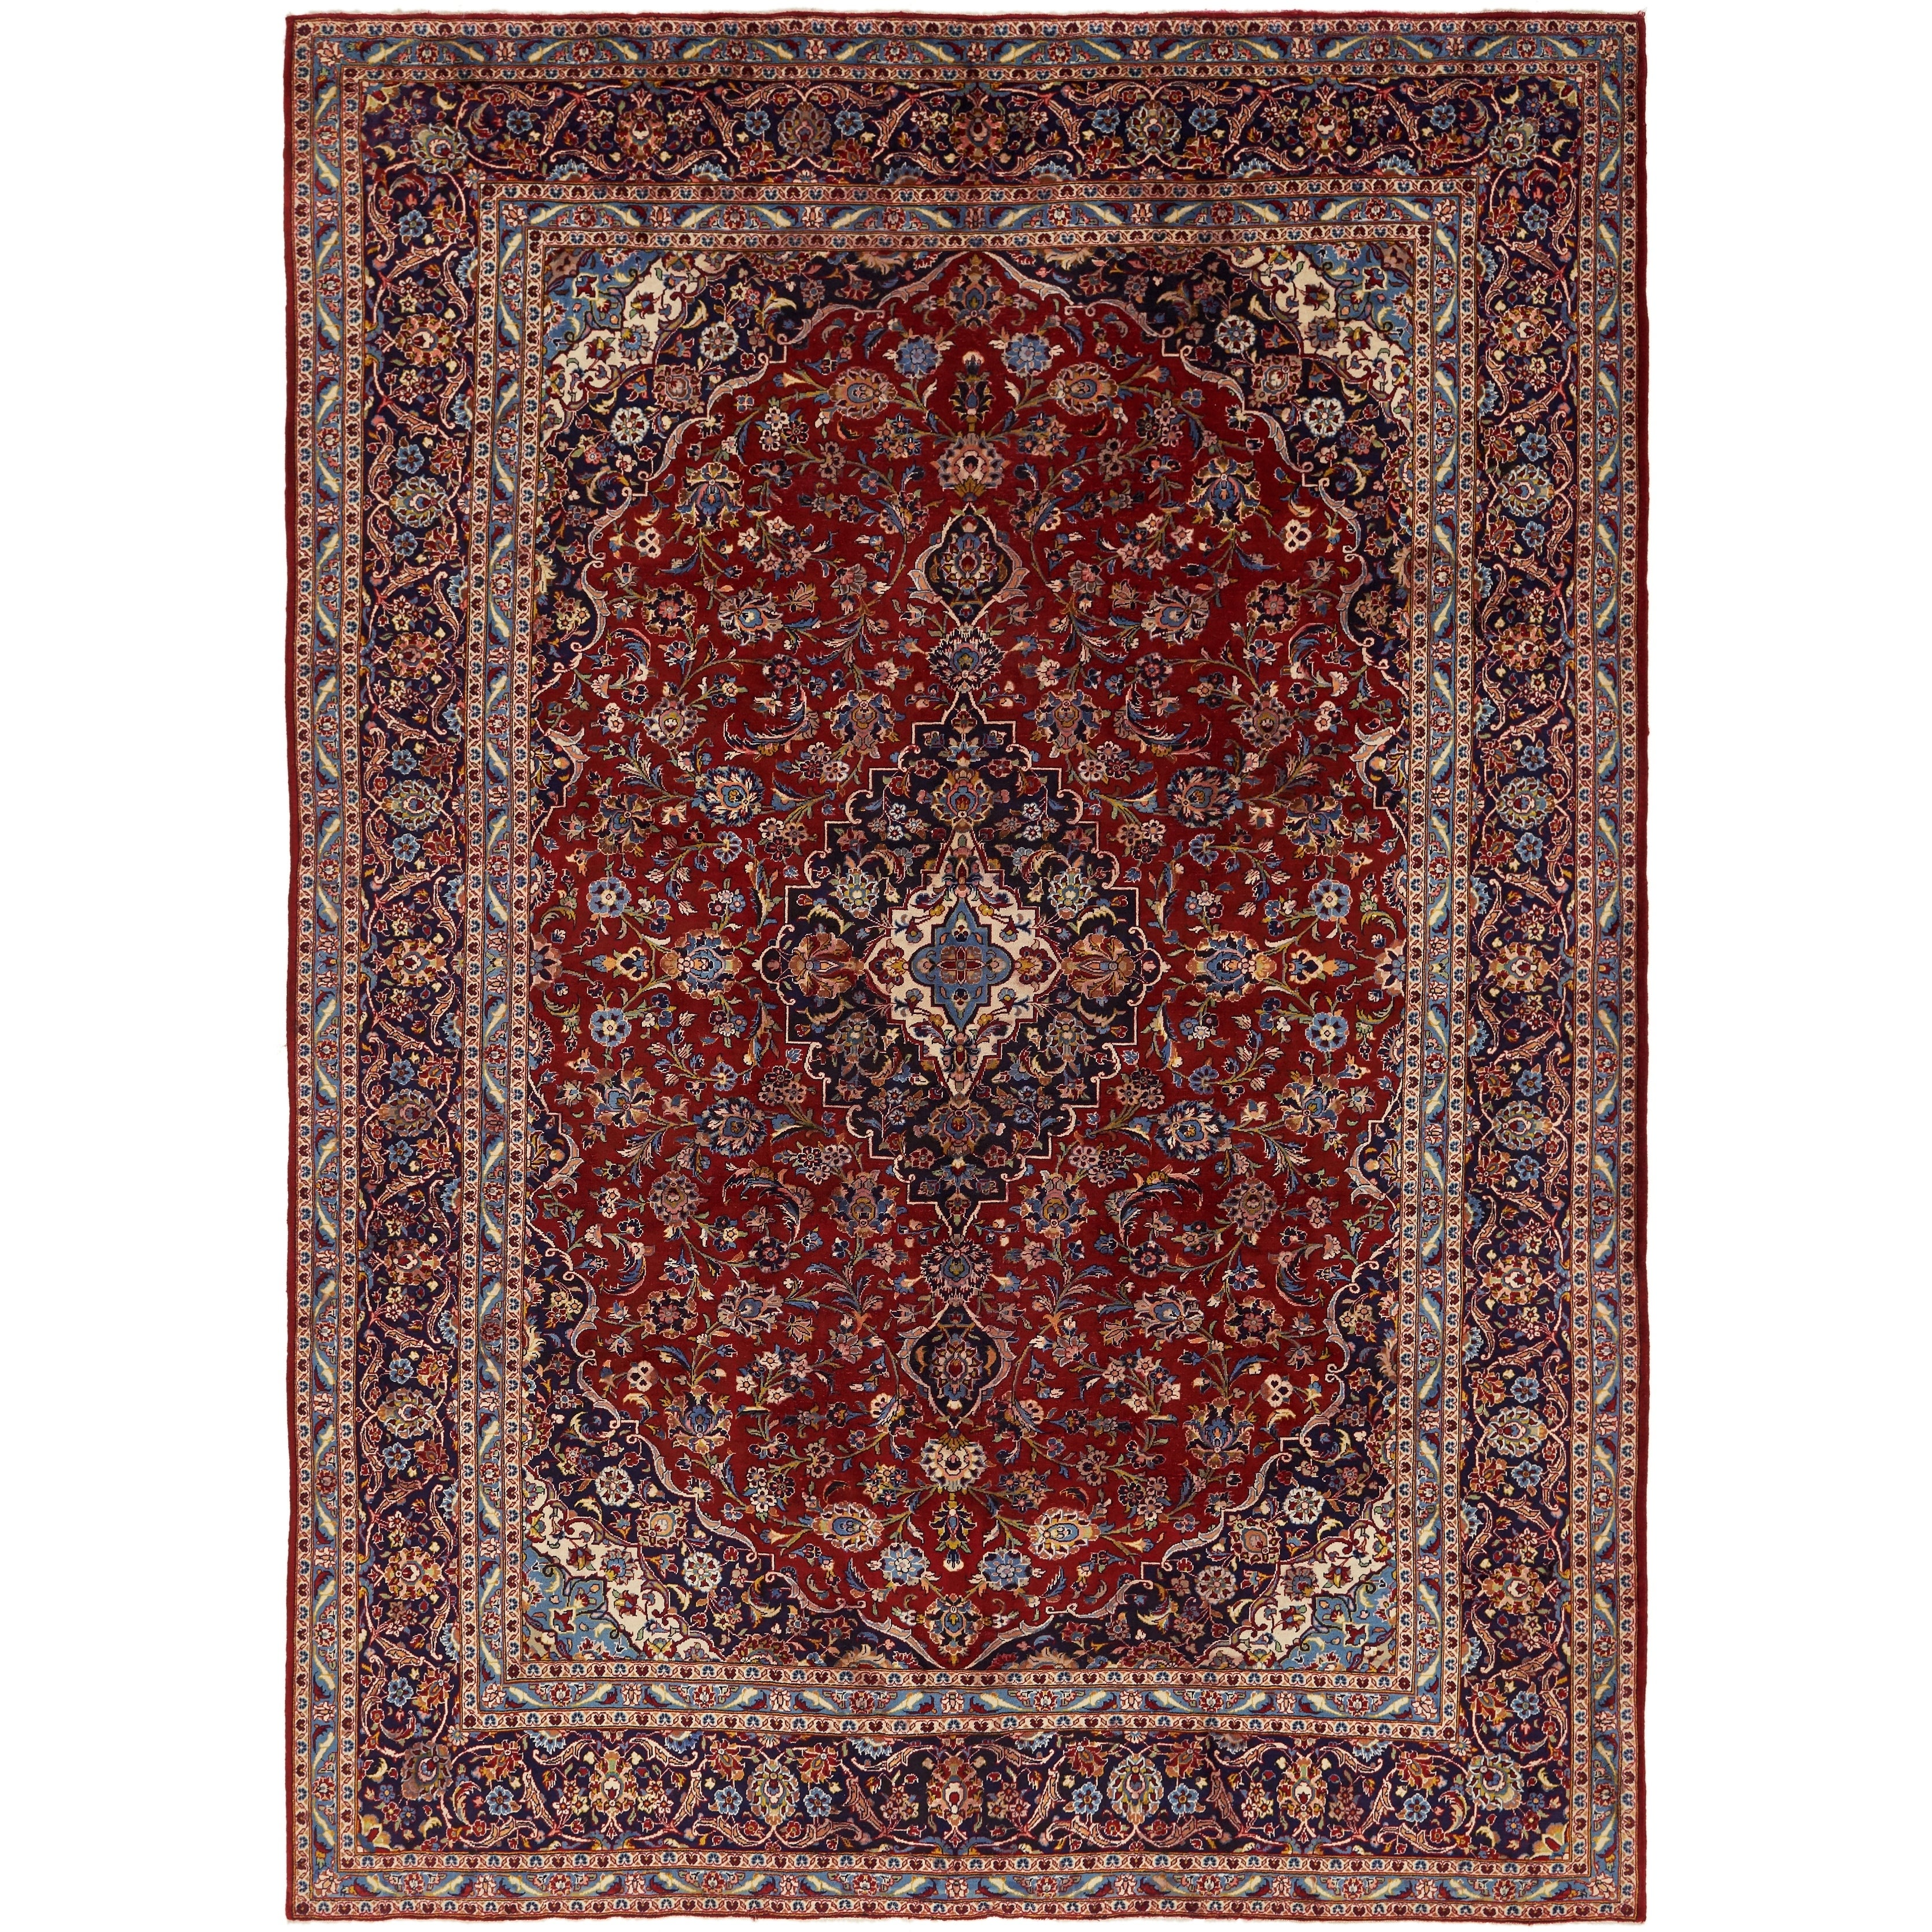 Hand Knotted Kashan Semi Antique Wool Area Rug - 9 7 x 13 3 (Red - 9 7 x 13 3)